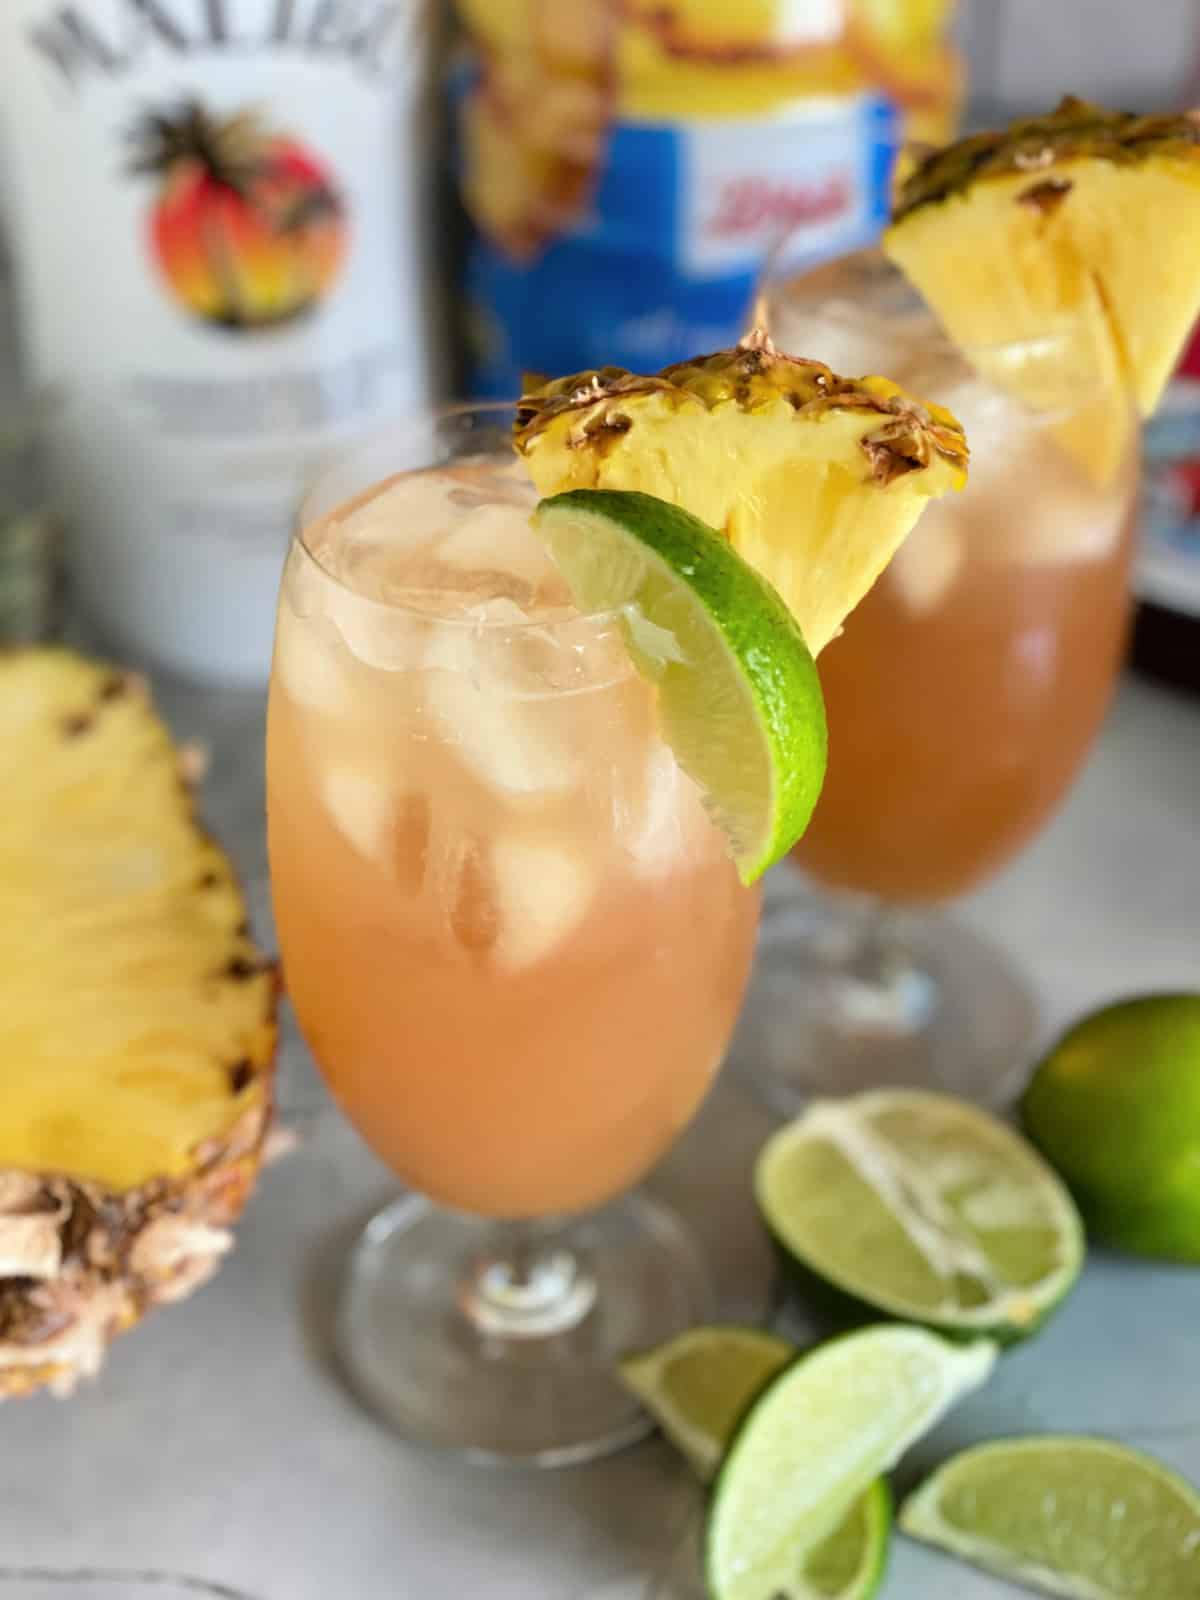 Two glasses of peach colored cocktails with pineapples and limes.